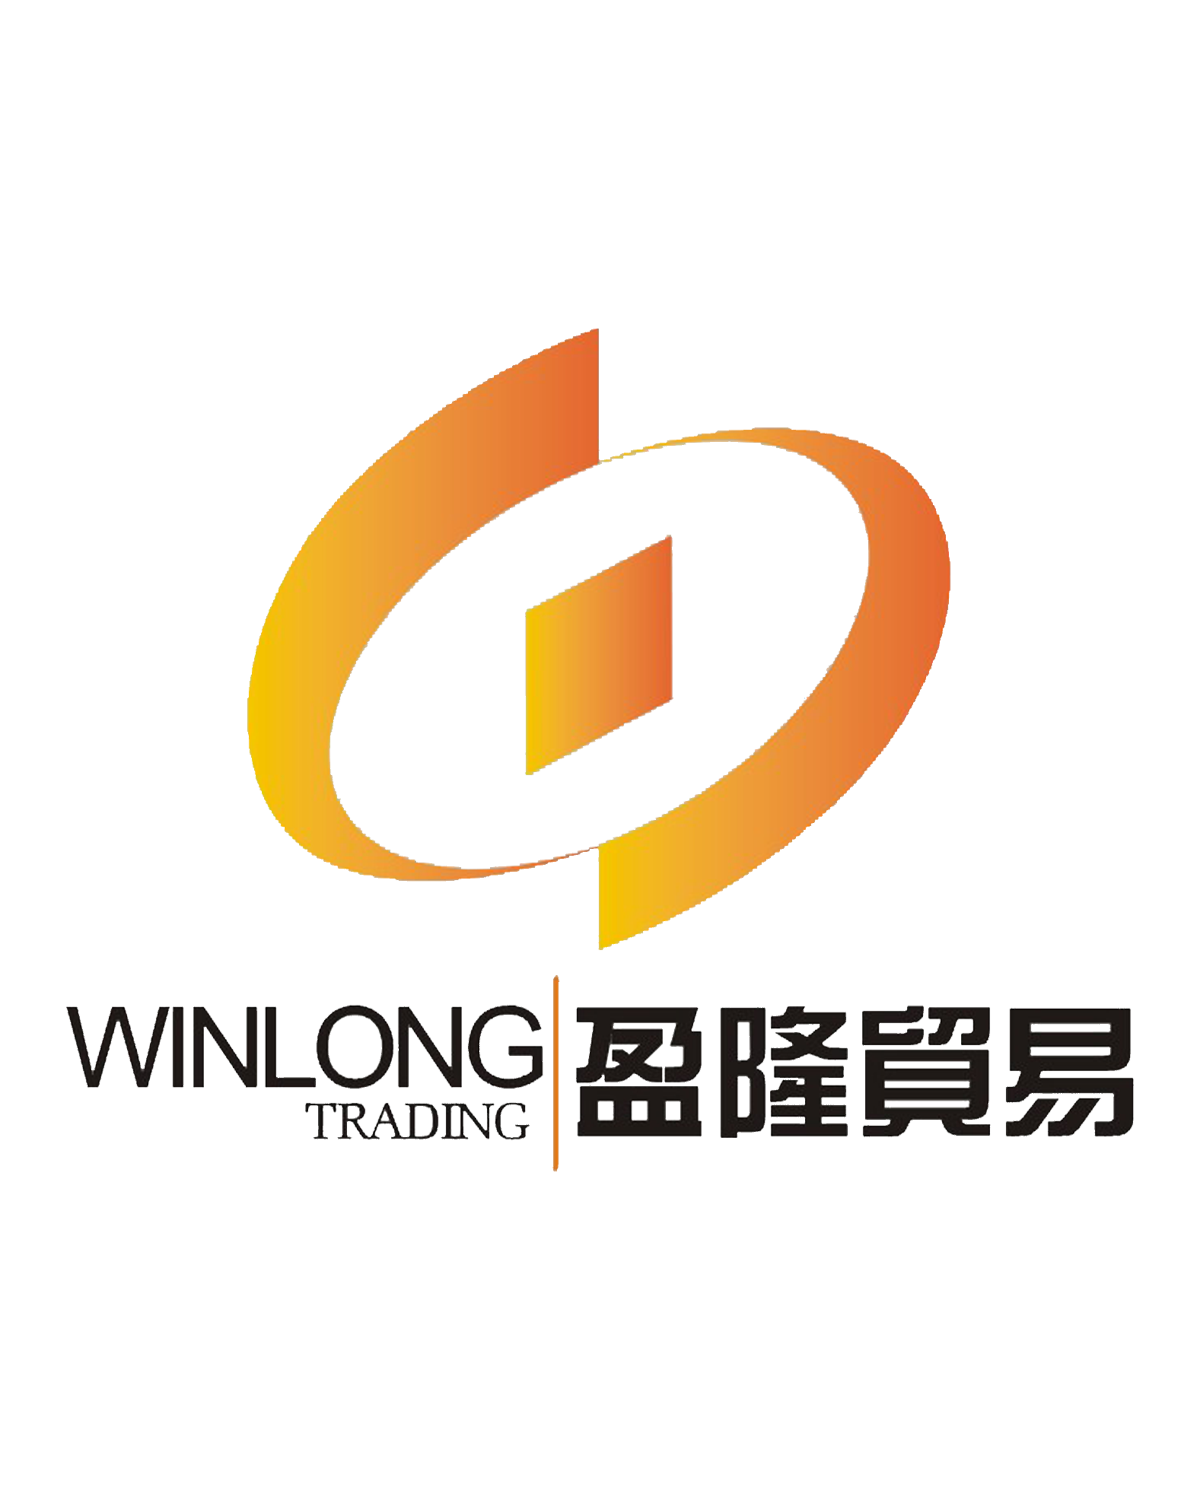 Foshan Win Long Trading Co., Ltd